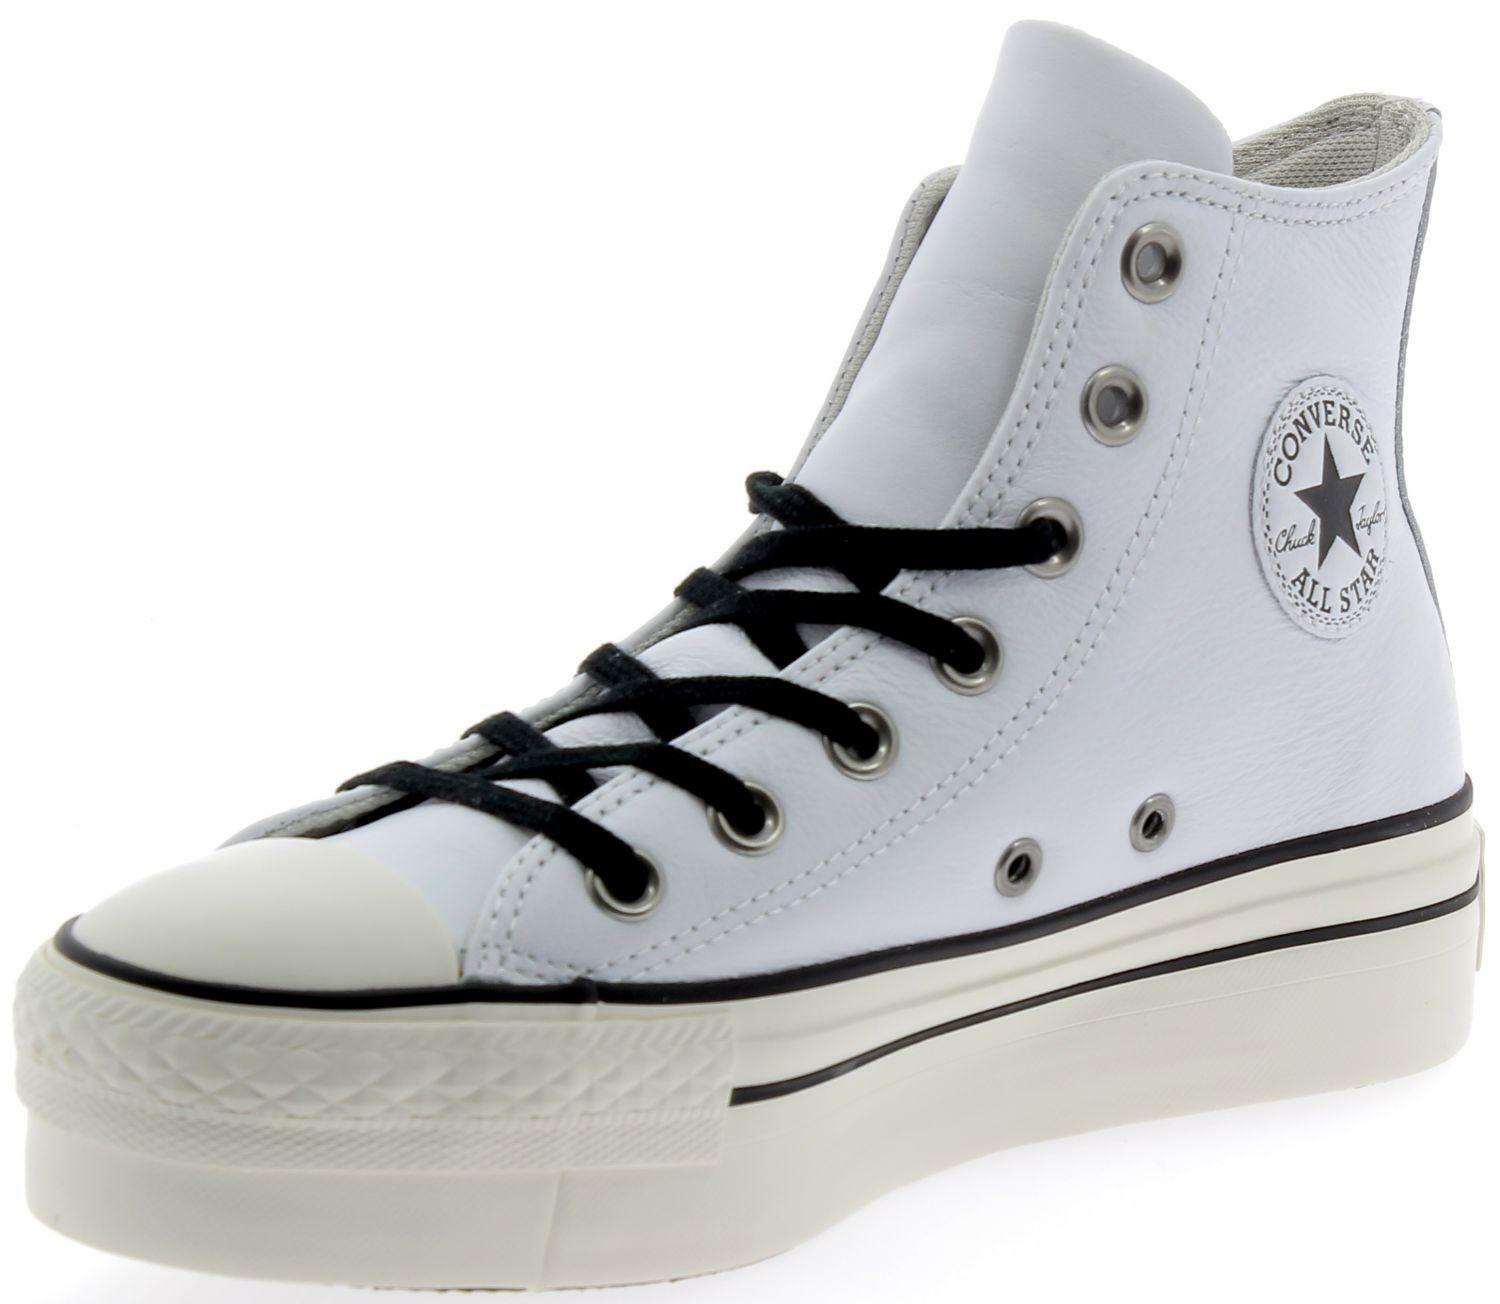 converse donna bianche in pelle